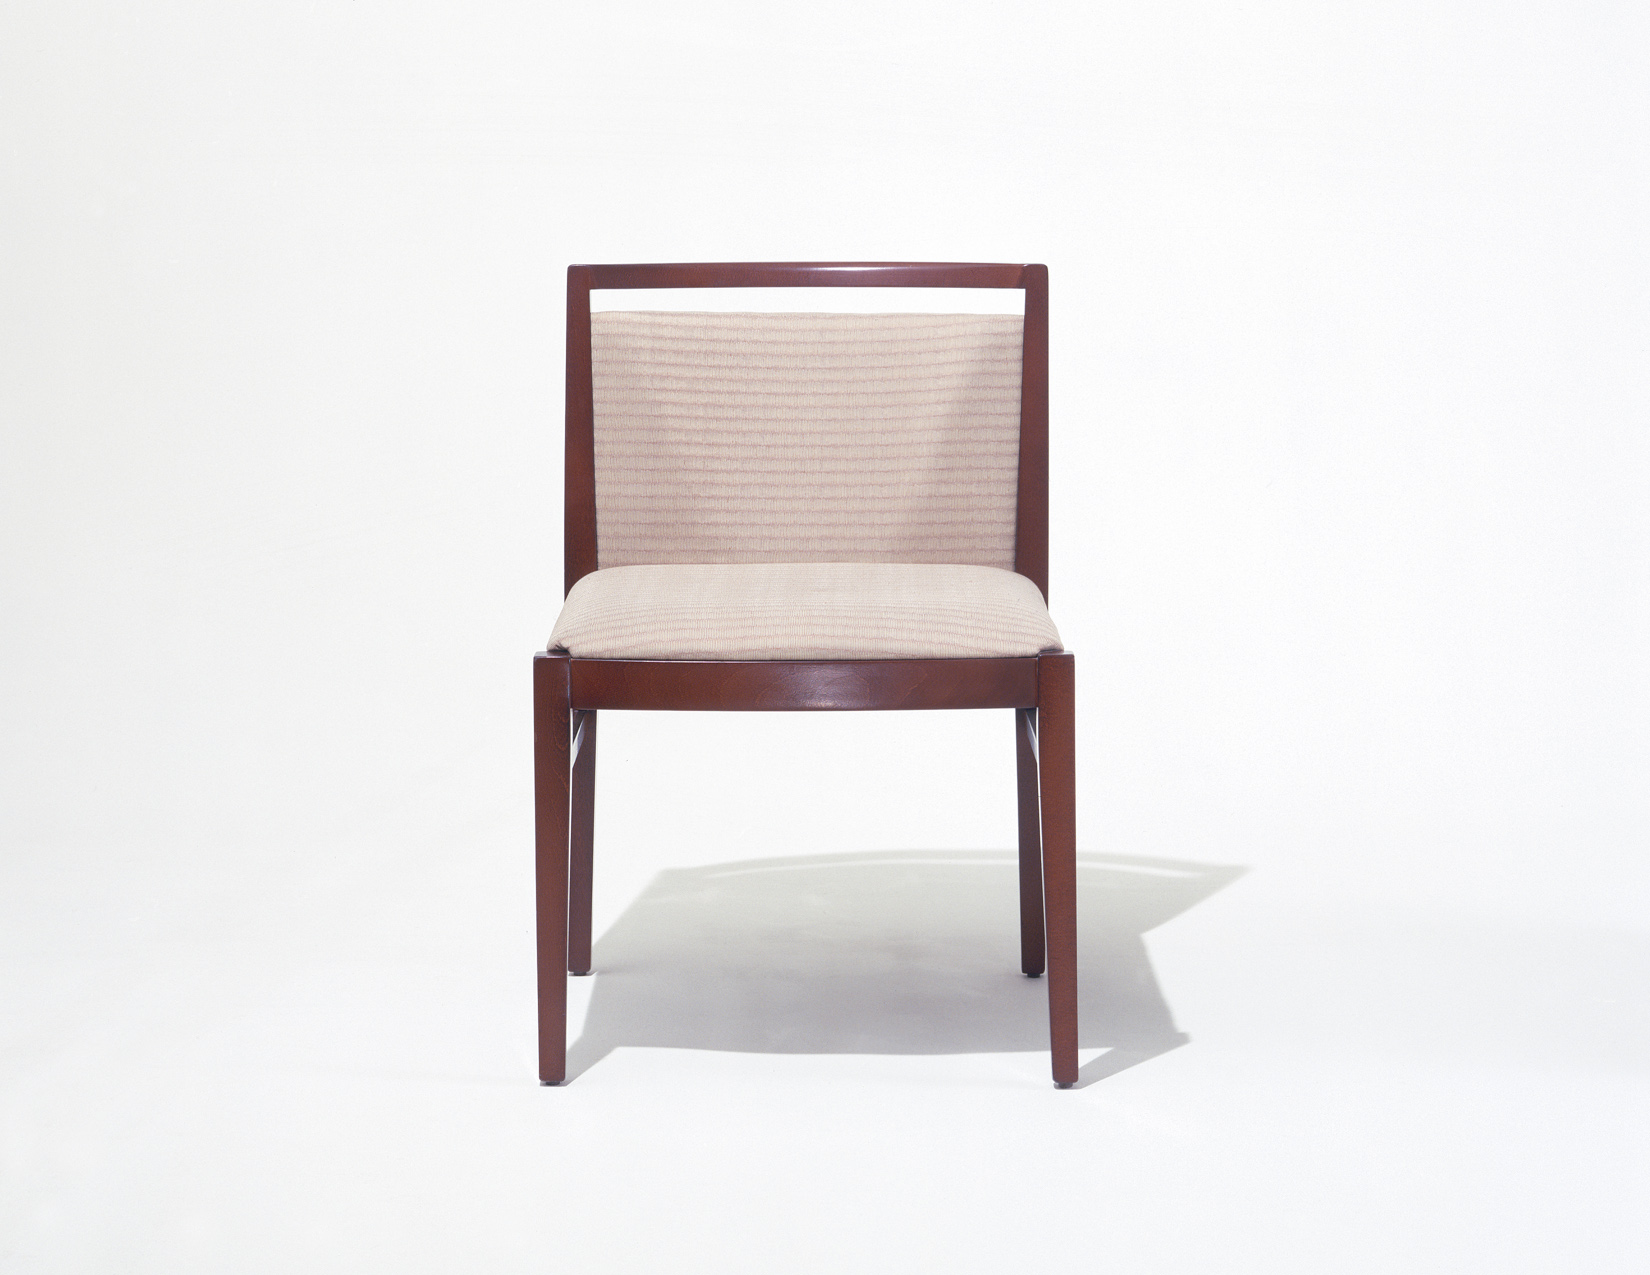 ricchio chair image library